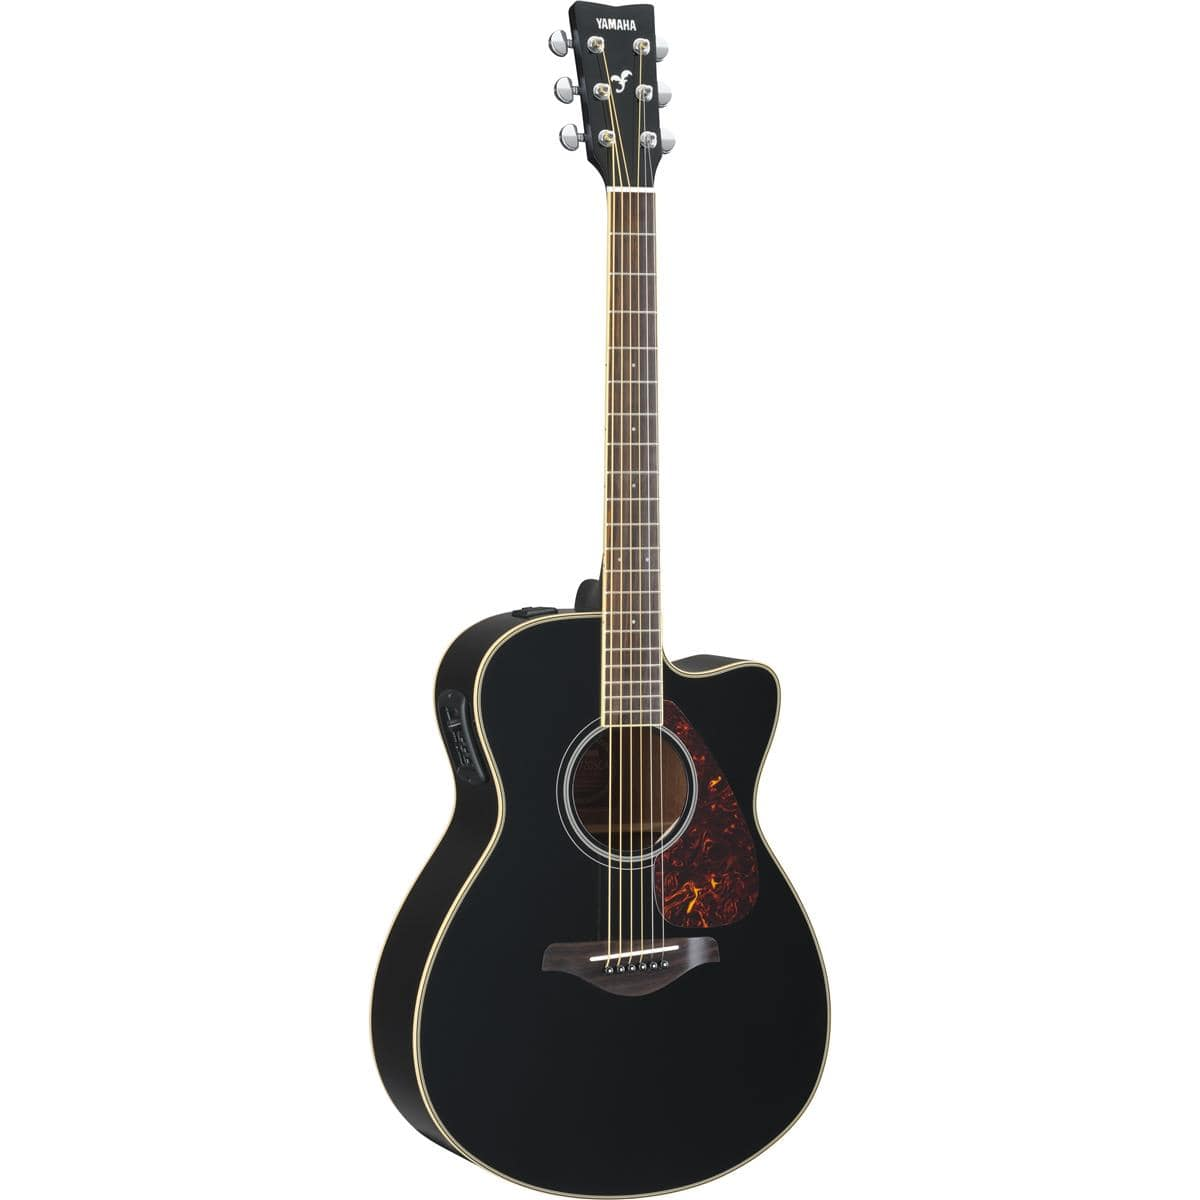 Yamaha FSX720SC Acoustic-Electric Guitar $250 + free shipping